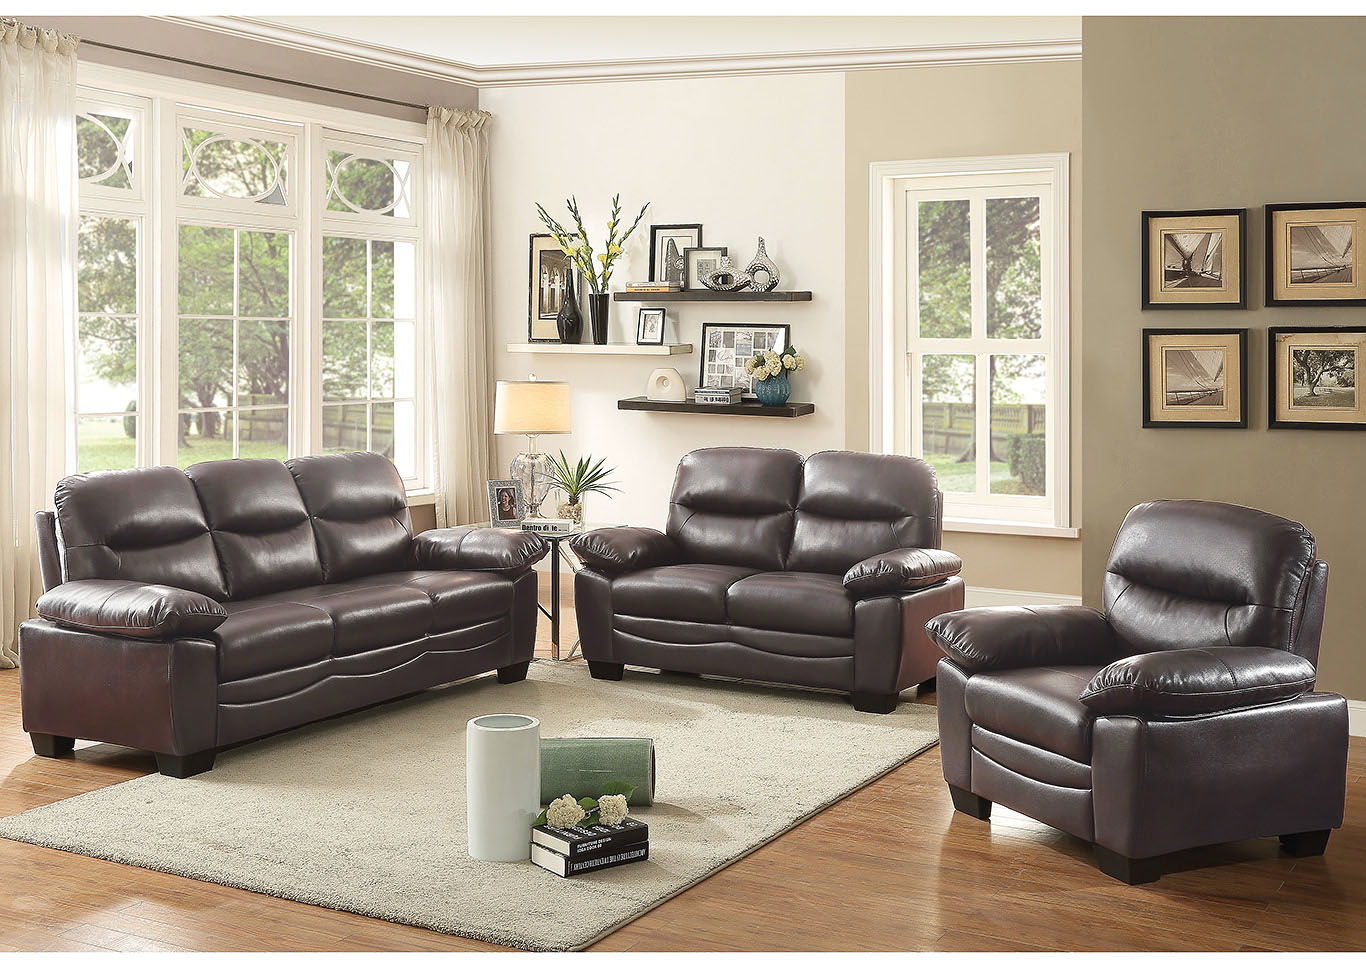 Torcon Dark Brown Faux Leather Sofa And Loveseat Home Furnishings Depot Ny